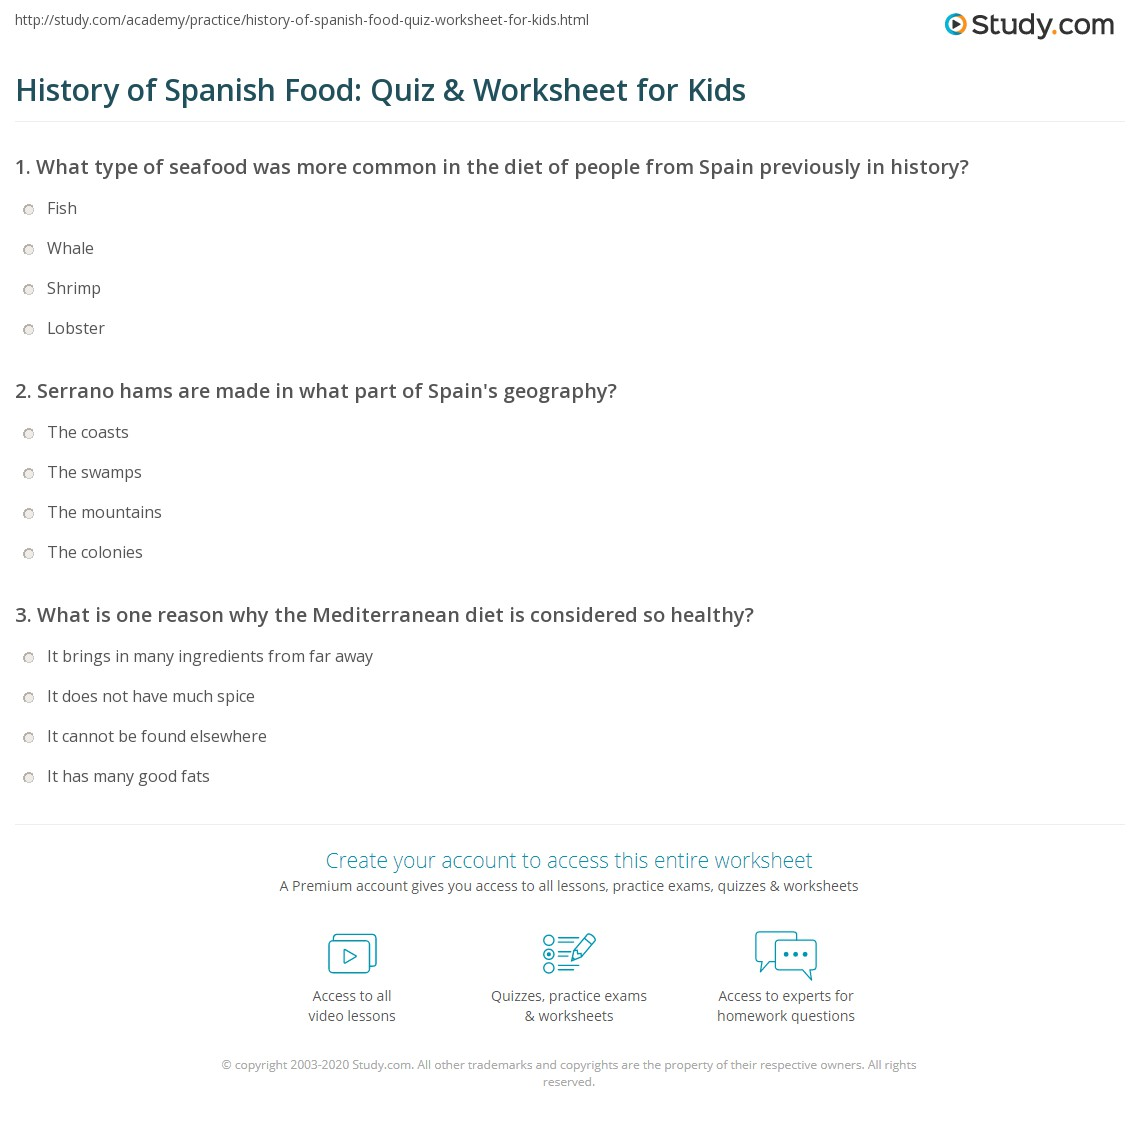 Worksheets Spanish Food Worksheet history of spanish food quiz worksheet for kids study com print lesson facts worksheet